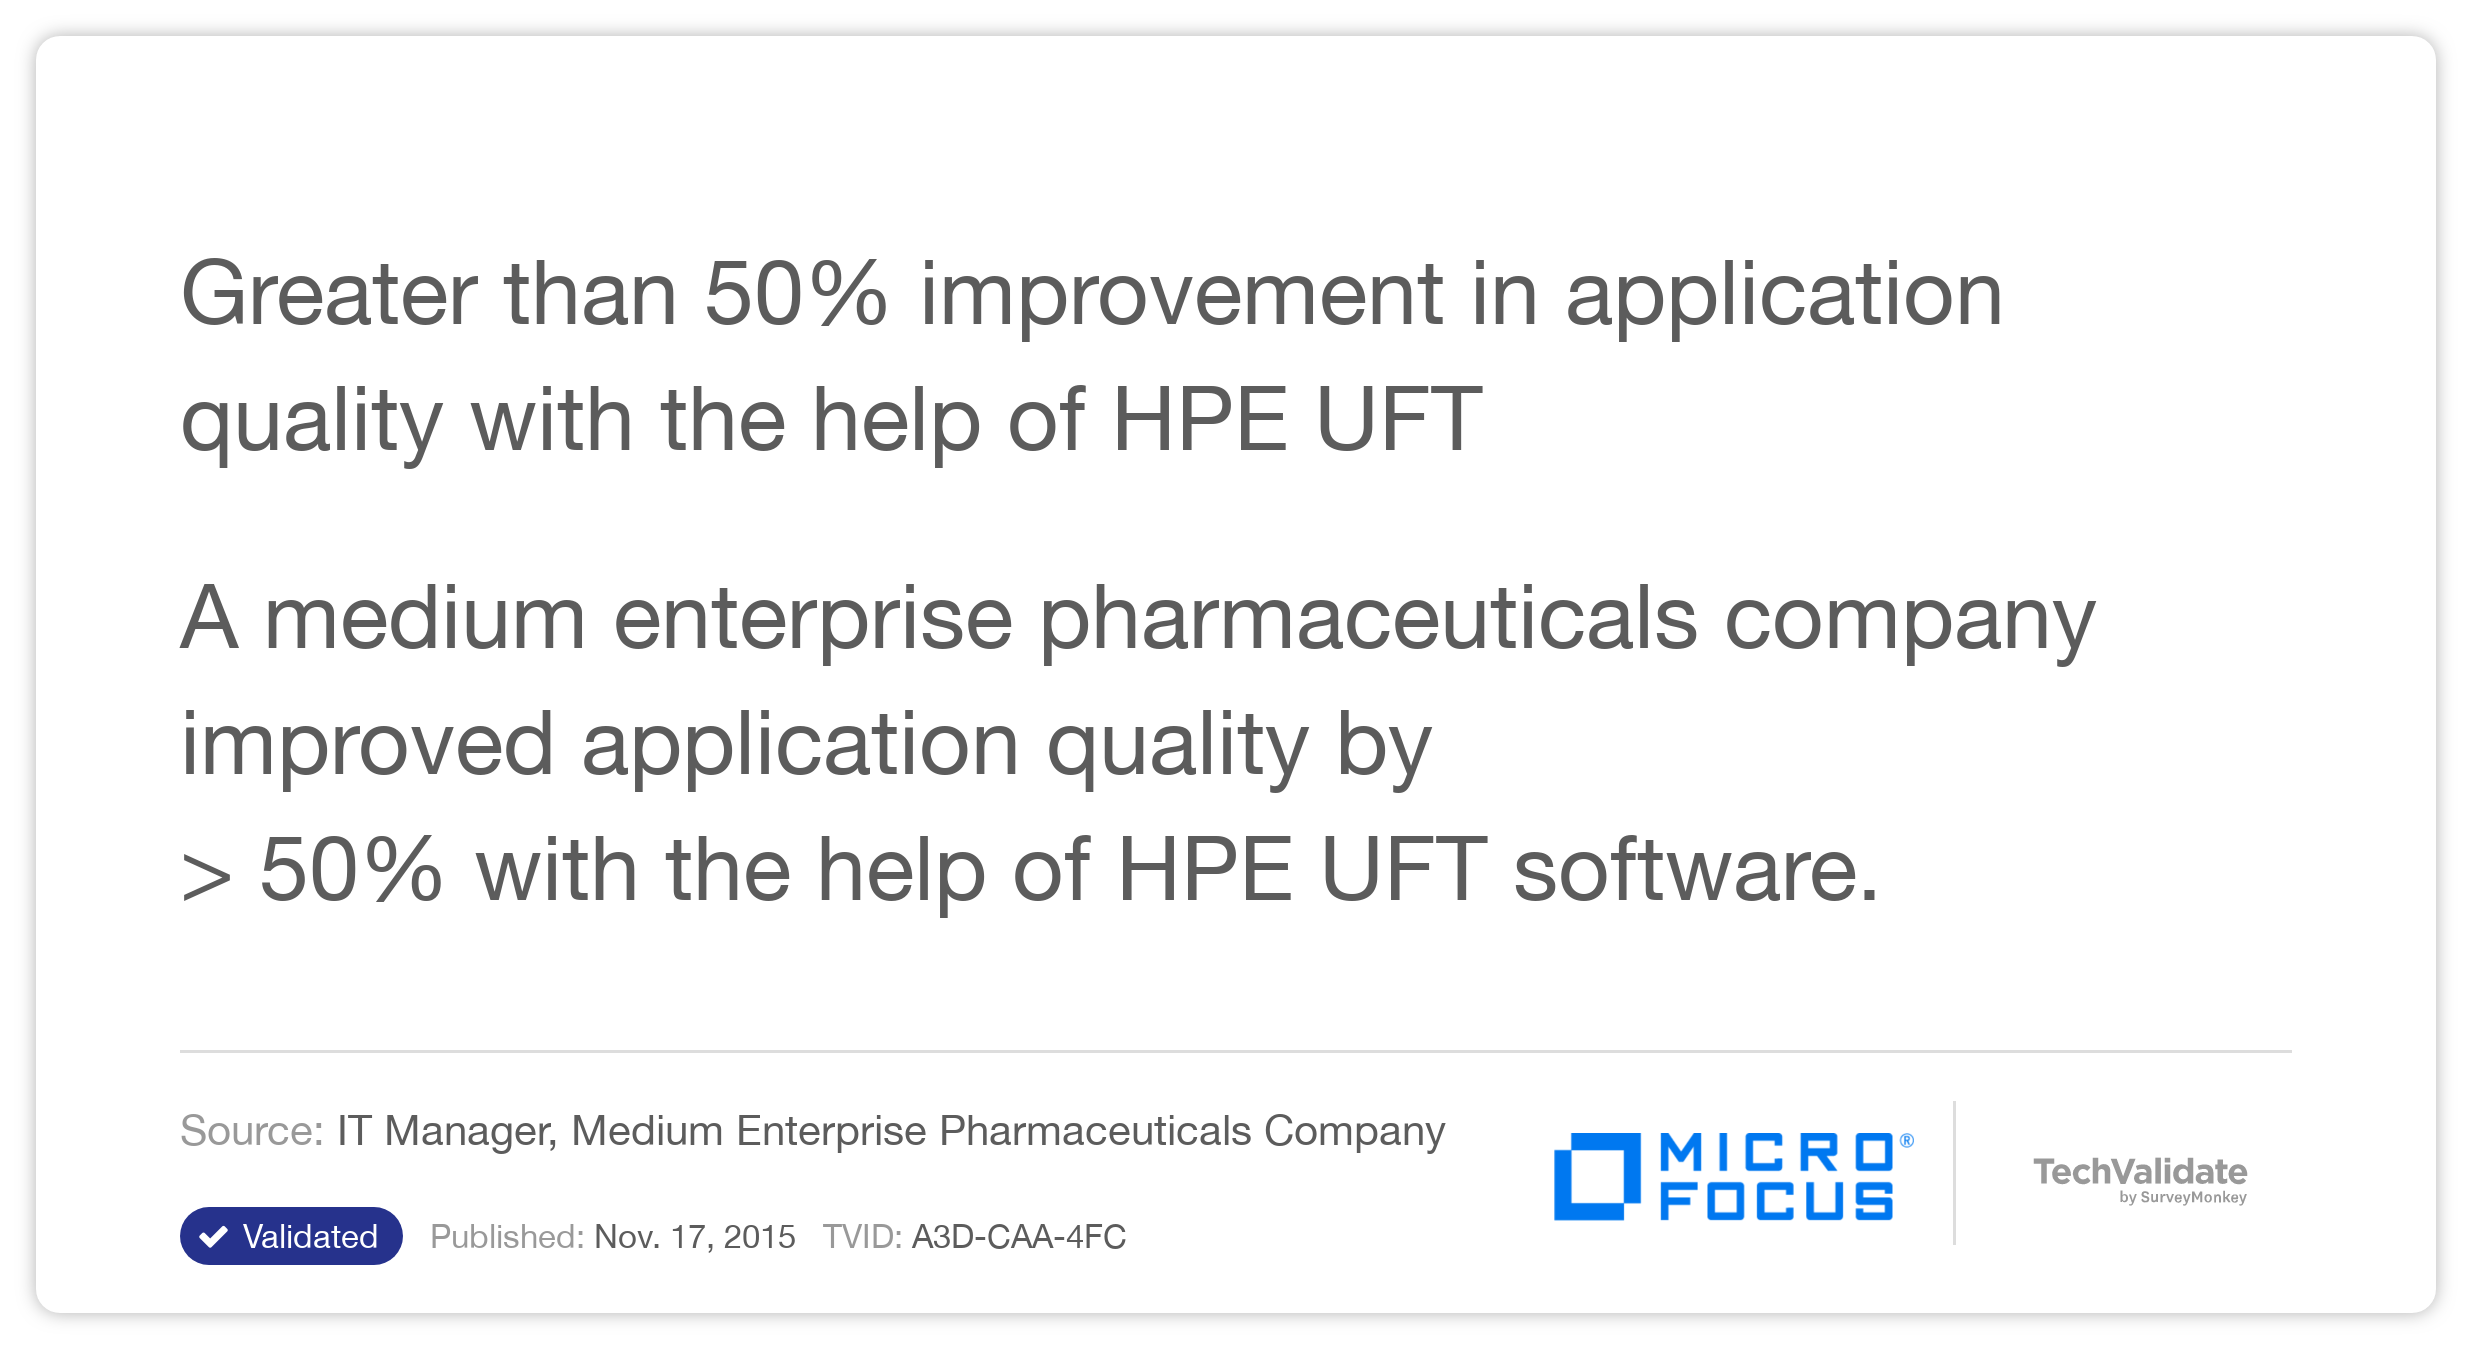 Greater than 50% improvement in application quality with the help of HP UFT